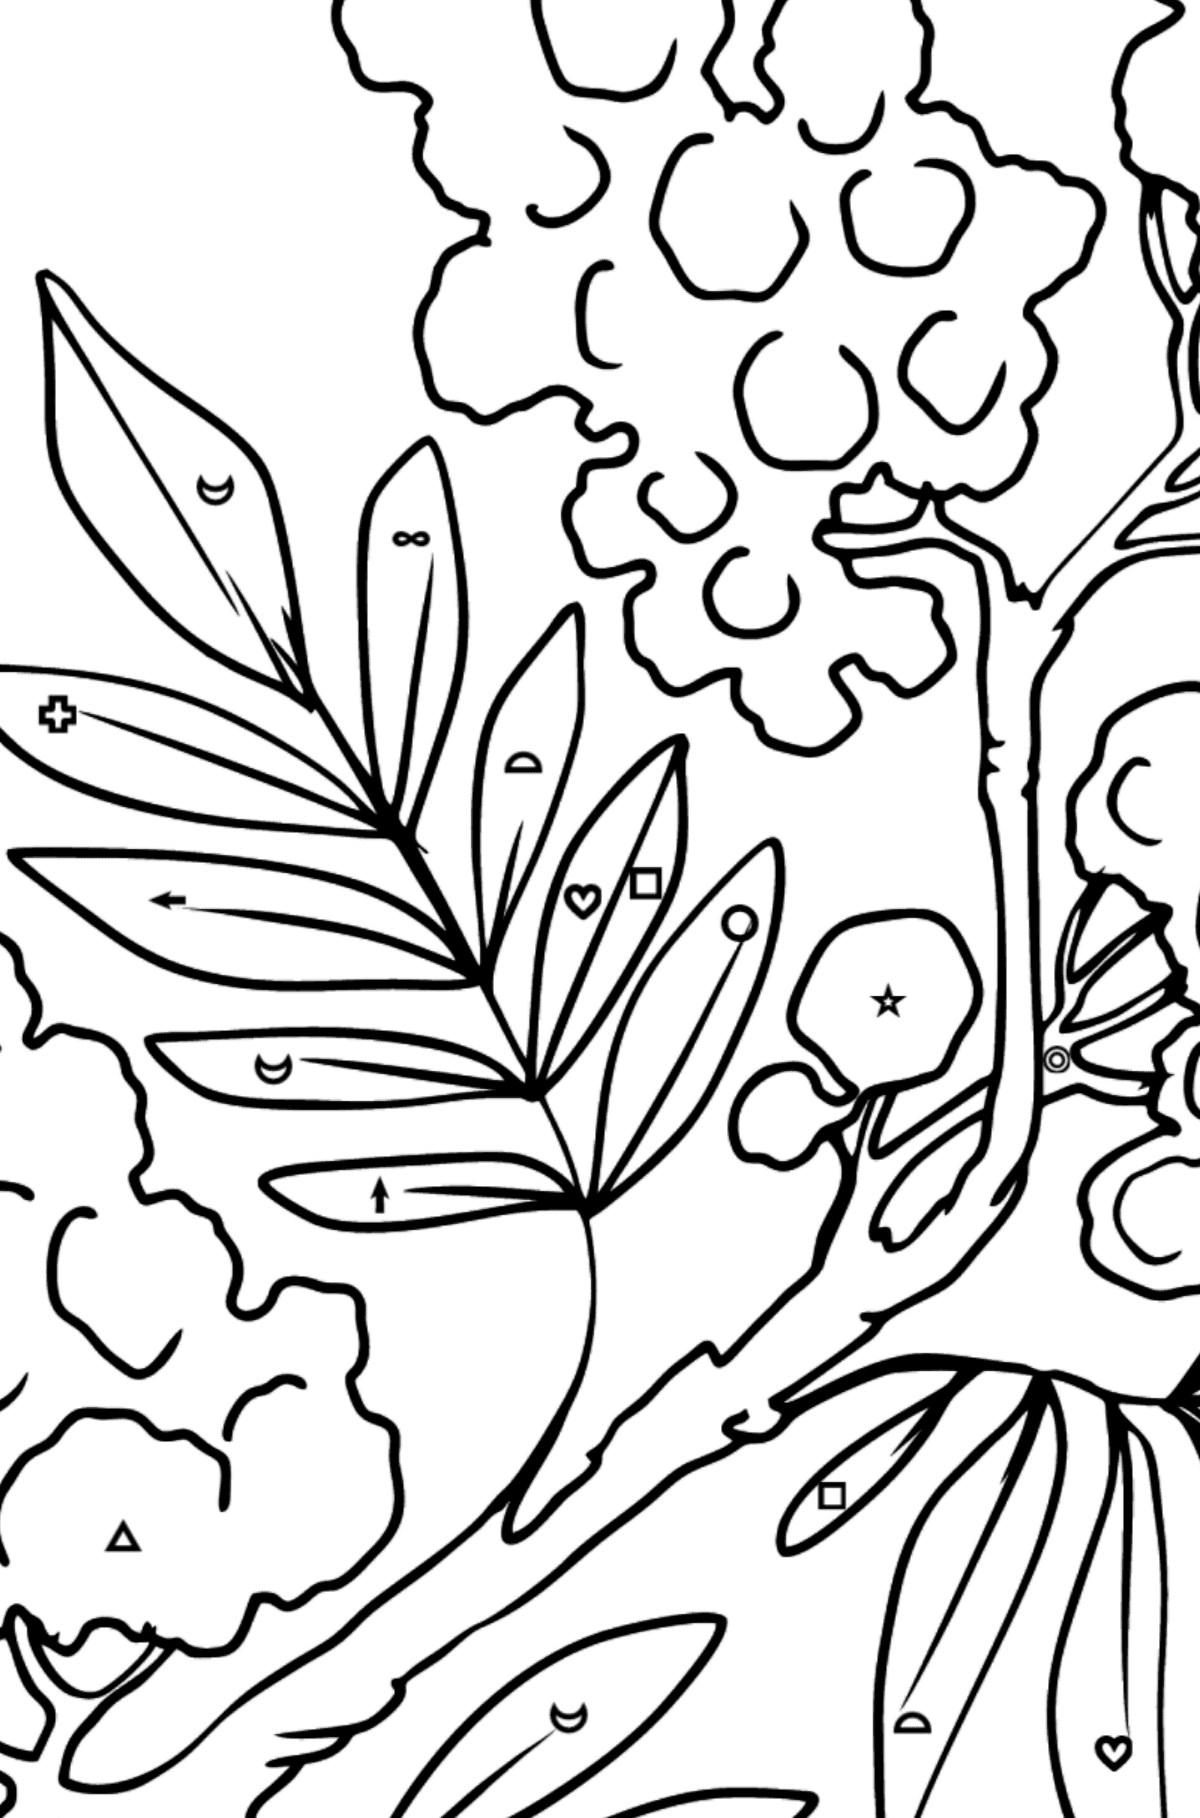 Flower Coloring Page - Mimosa - Coloring by Symbols and Geometric Shapes for Kids